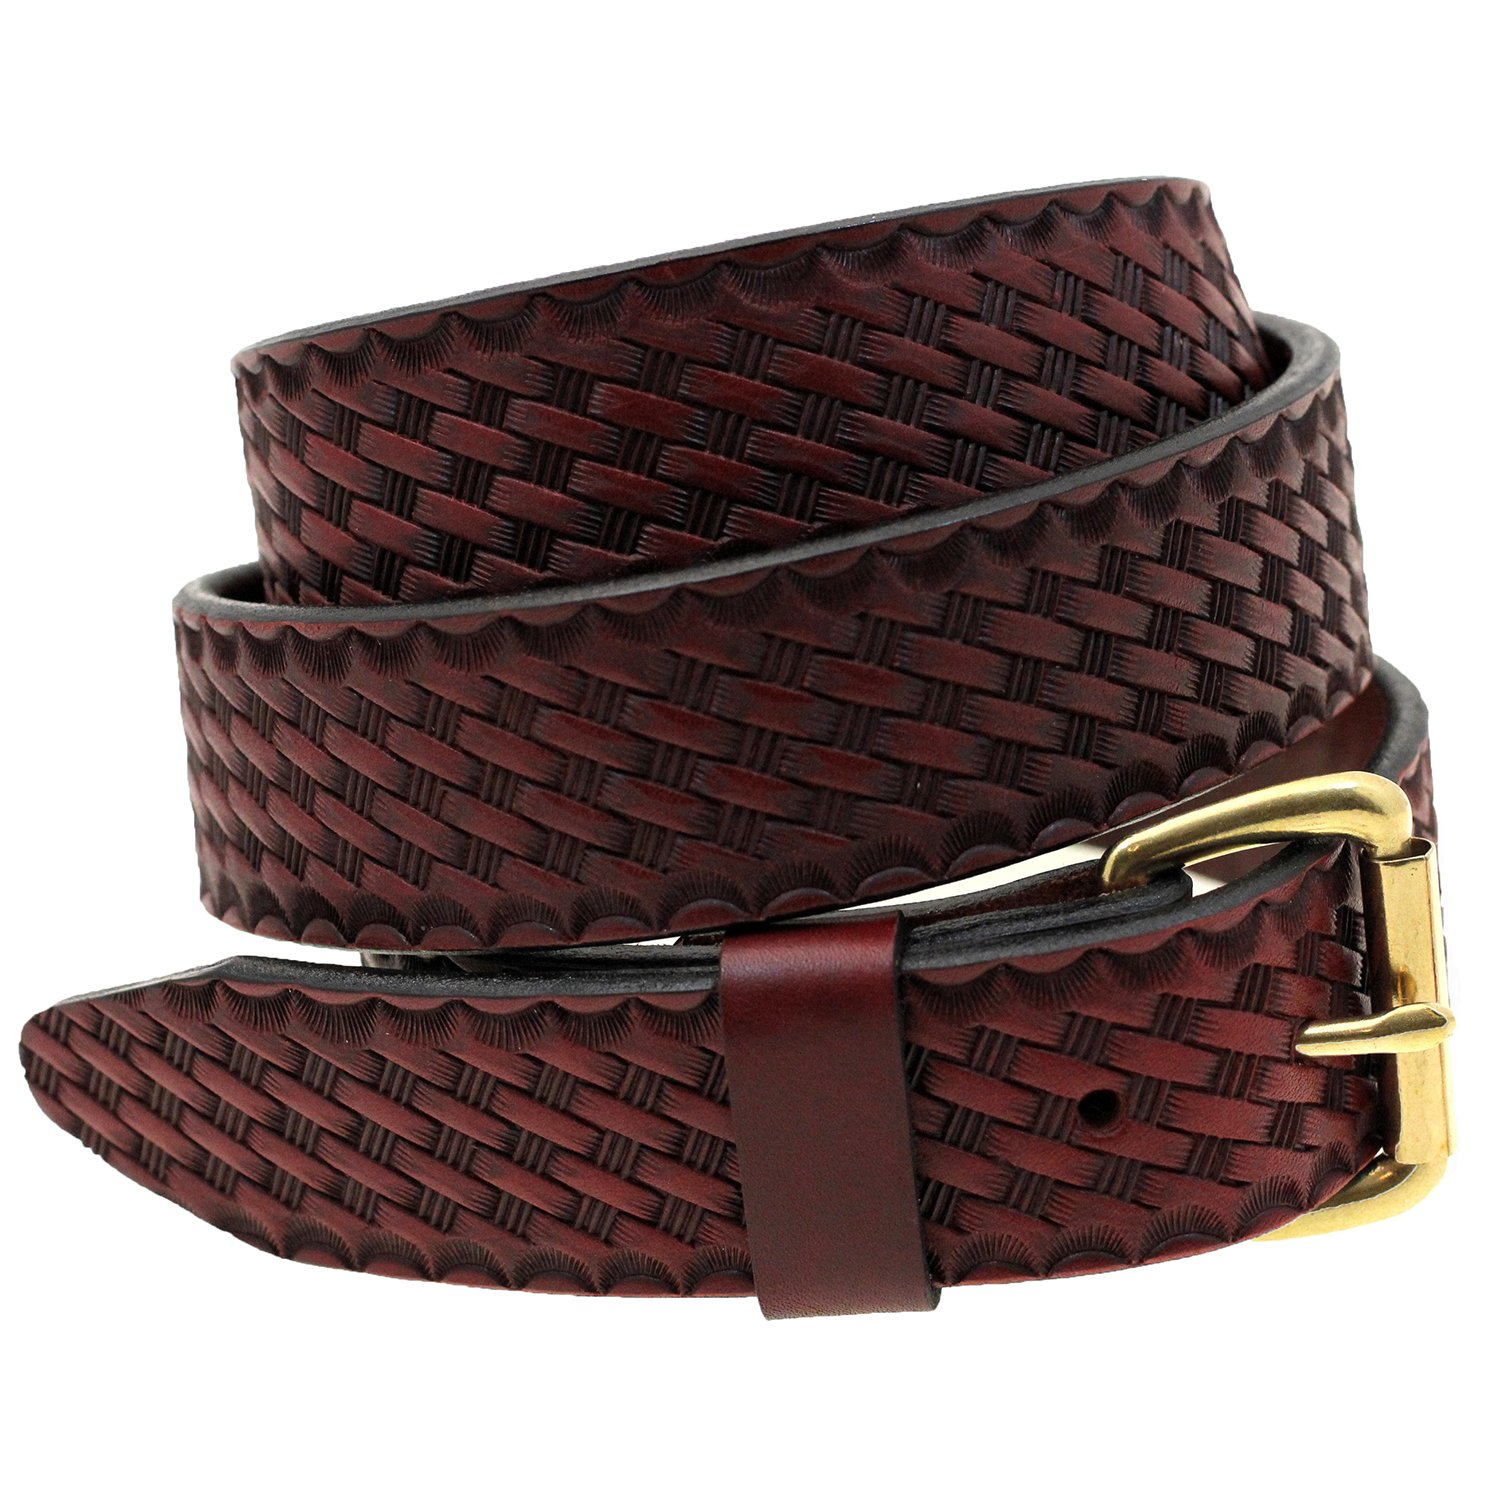 Men 1 1//2 Burgundy Latigo Leather Belt Basket Weave Embossed Nickel-Free